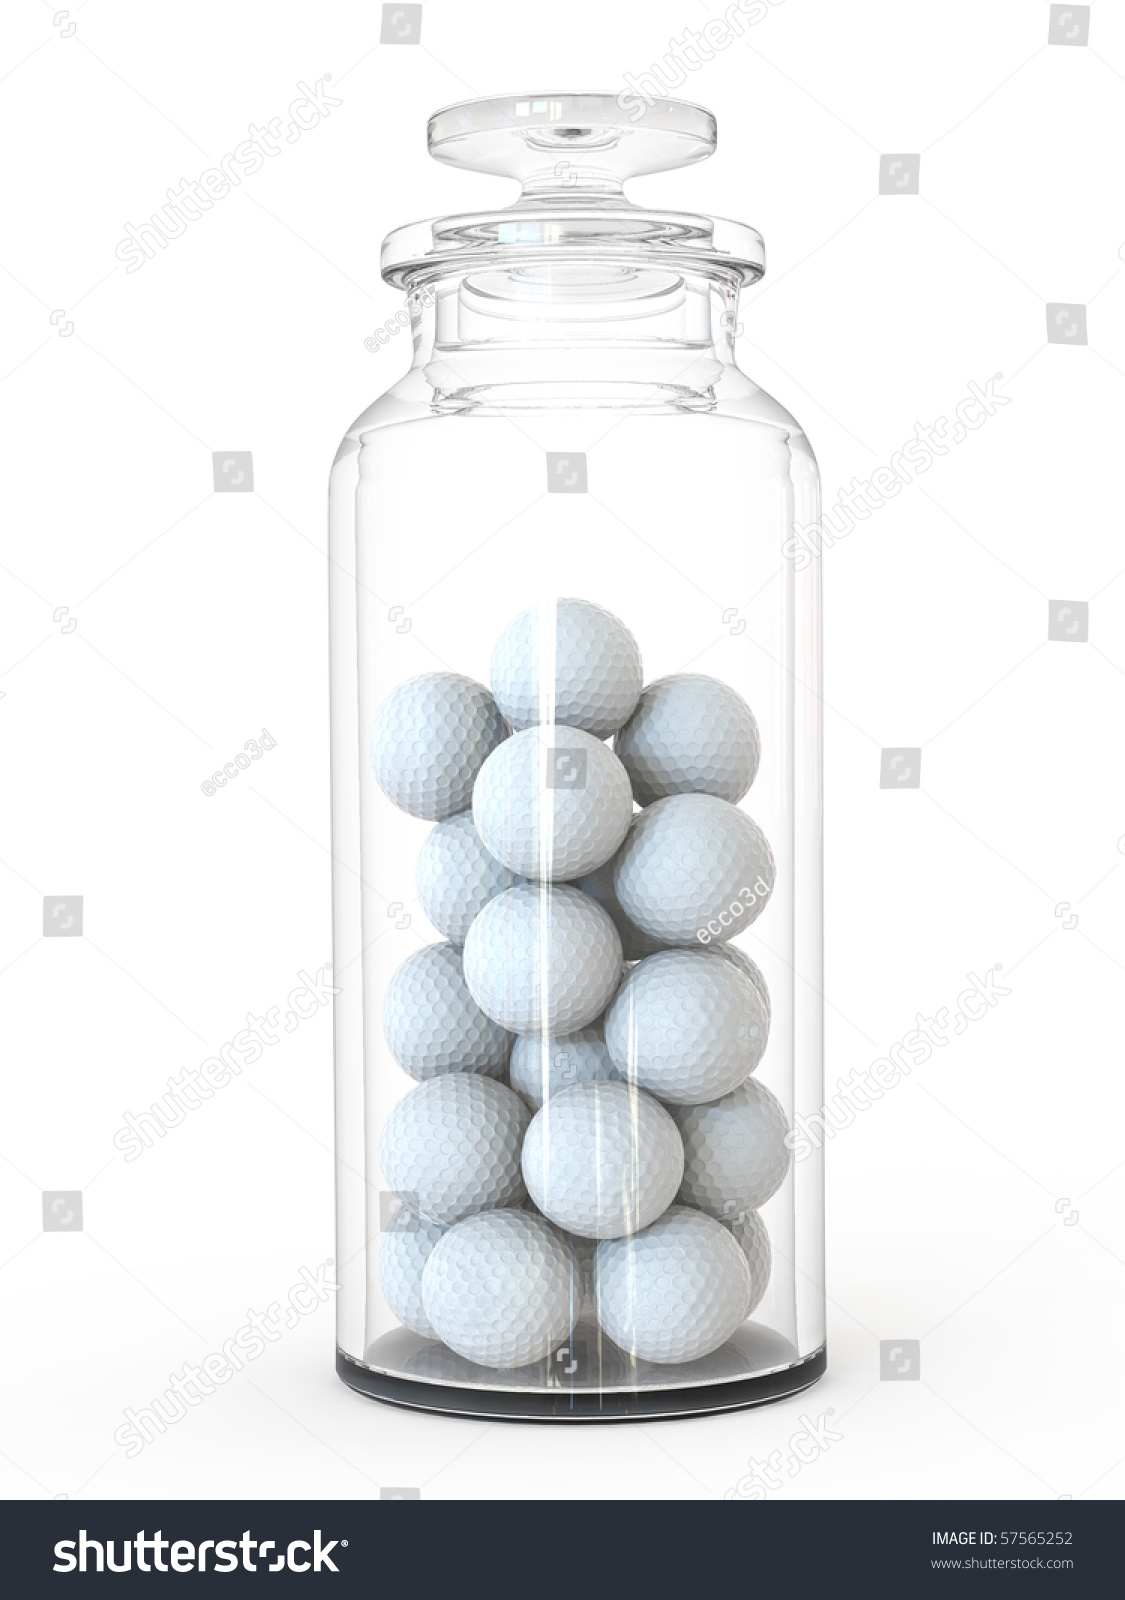 jar golf balls stock illustration 57565252 shutterstock